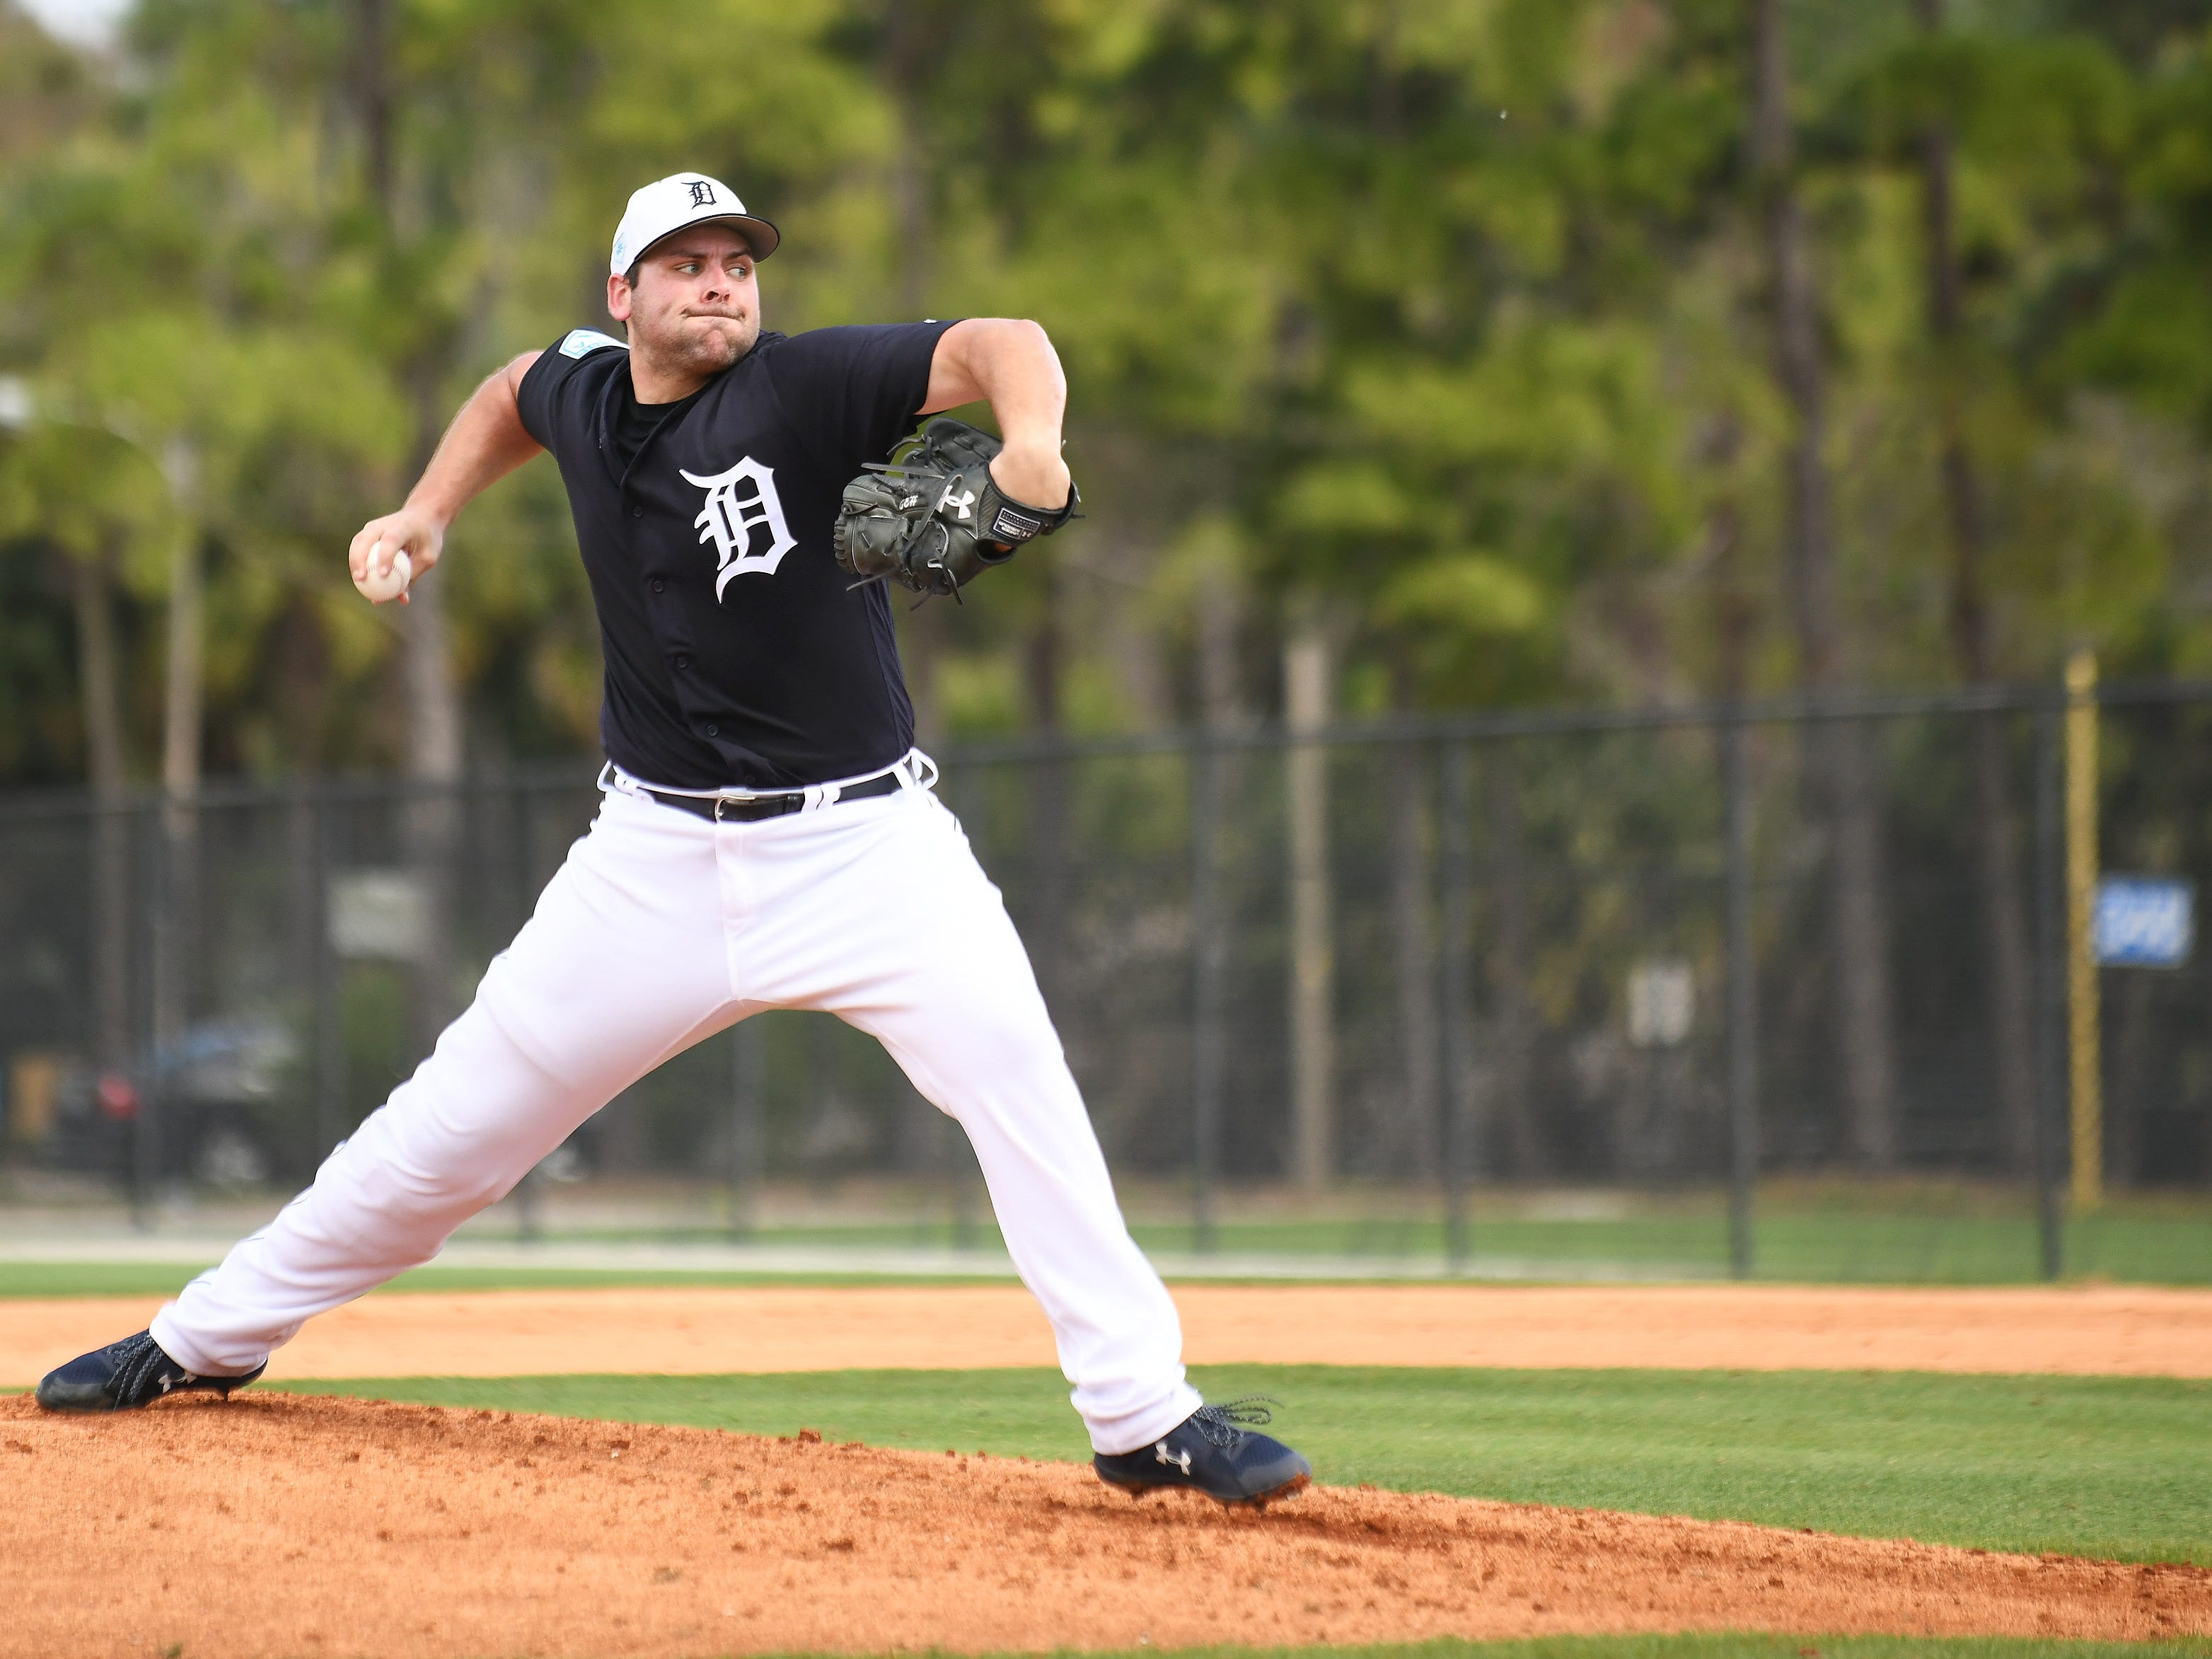 Tigers pitcher Michael Fulmer throws his first live batting practice.